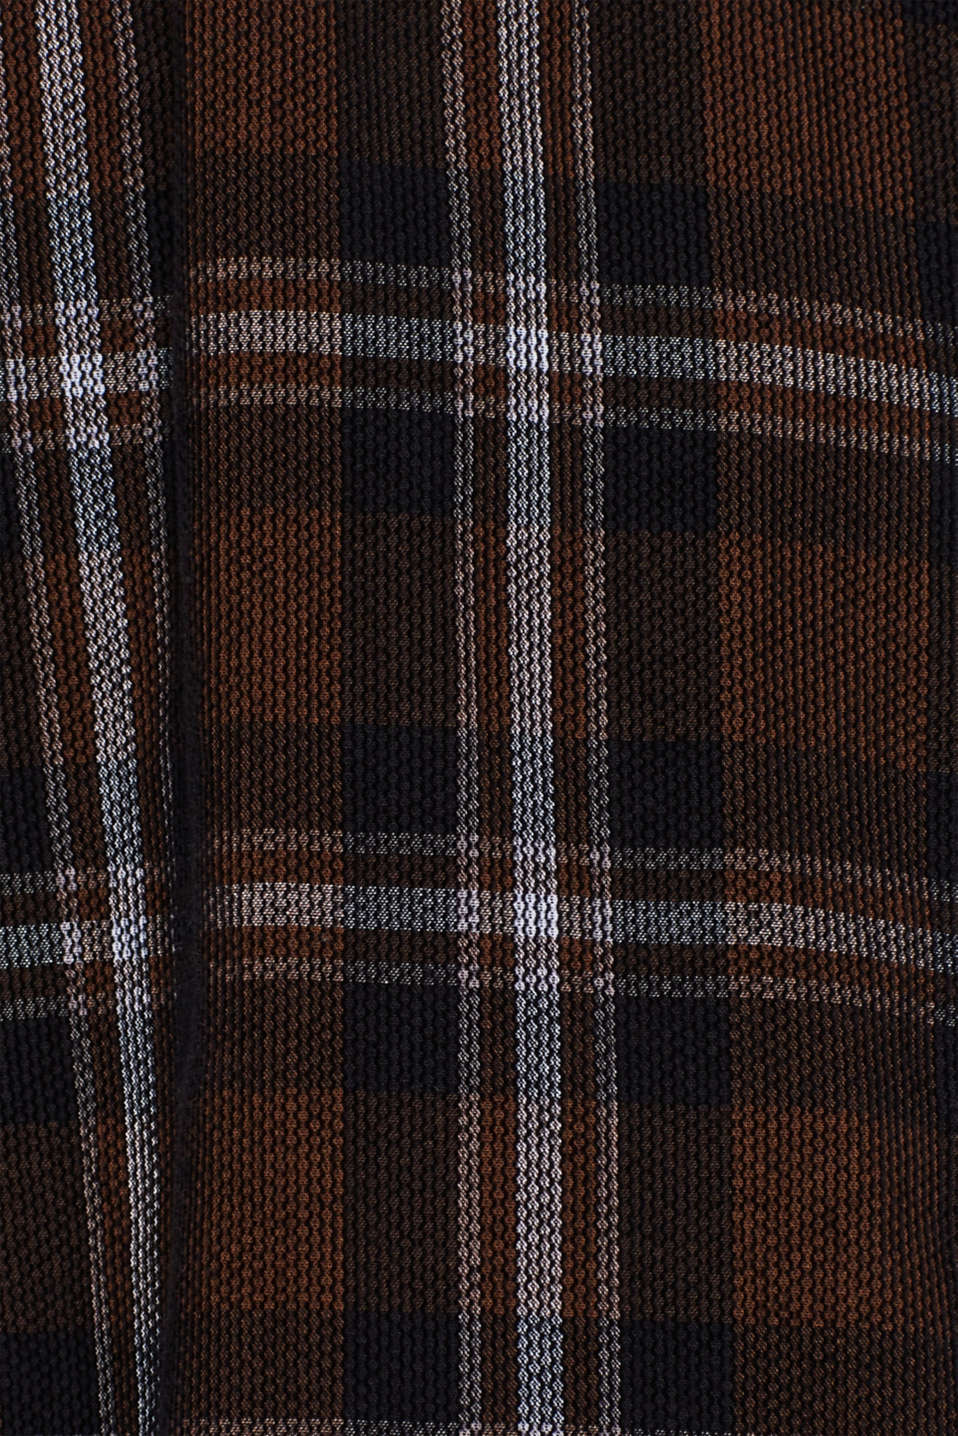 Corduroy top with a check pattern, 100% cotton, GREY, detail image number 4